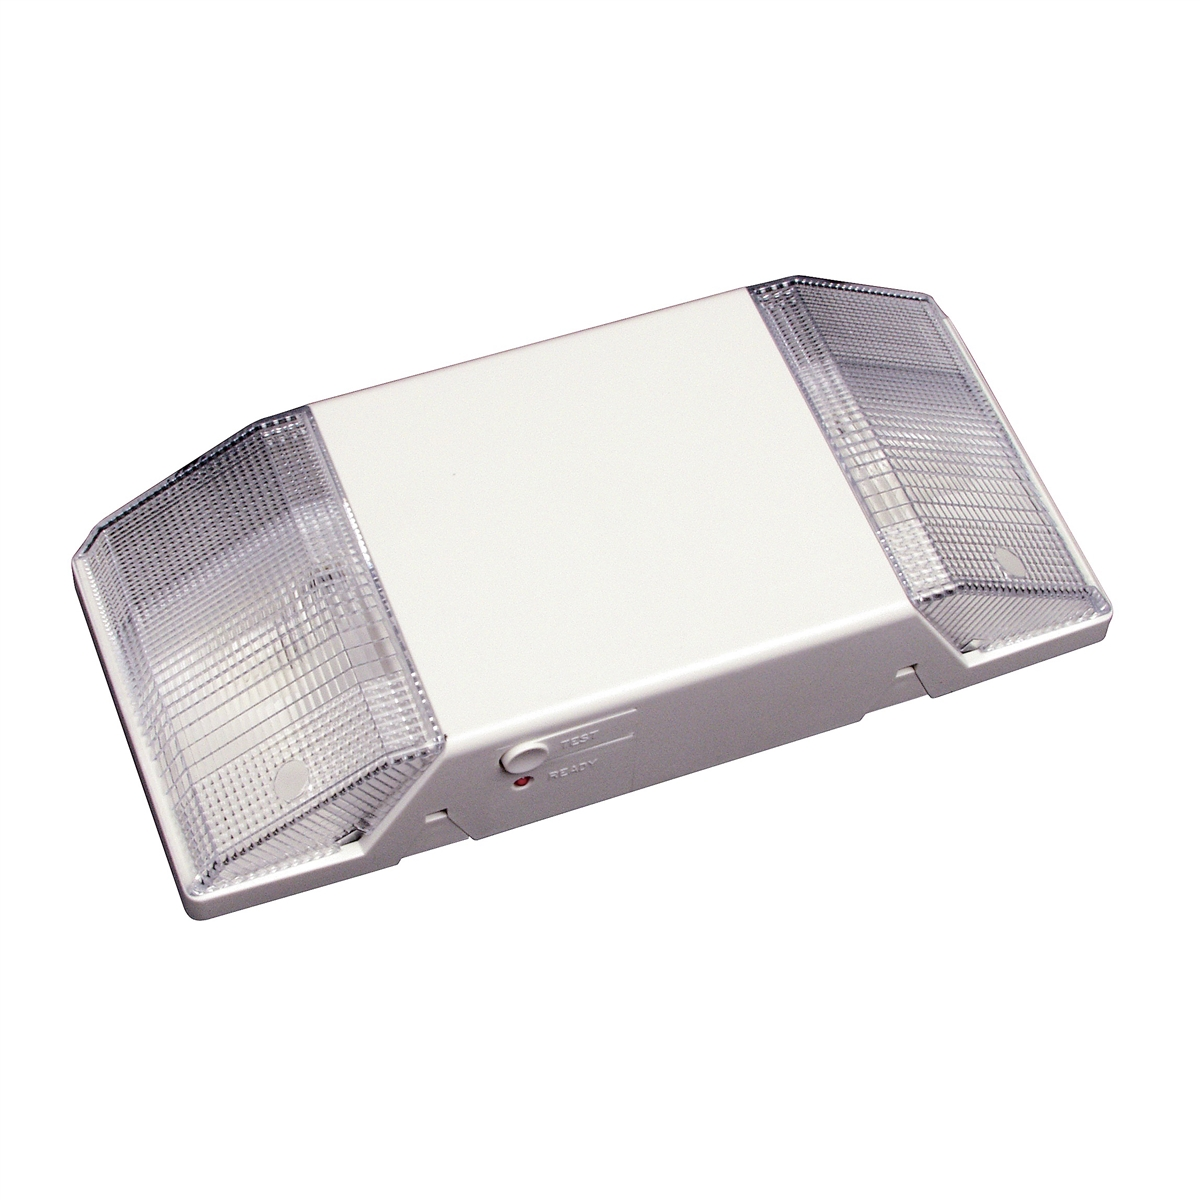 hight resolution of nicor 18102 compact thermoplastic emergency lighting unit view larger photo